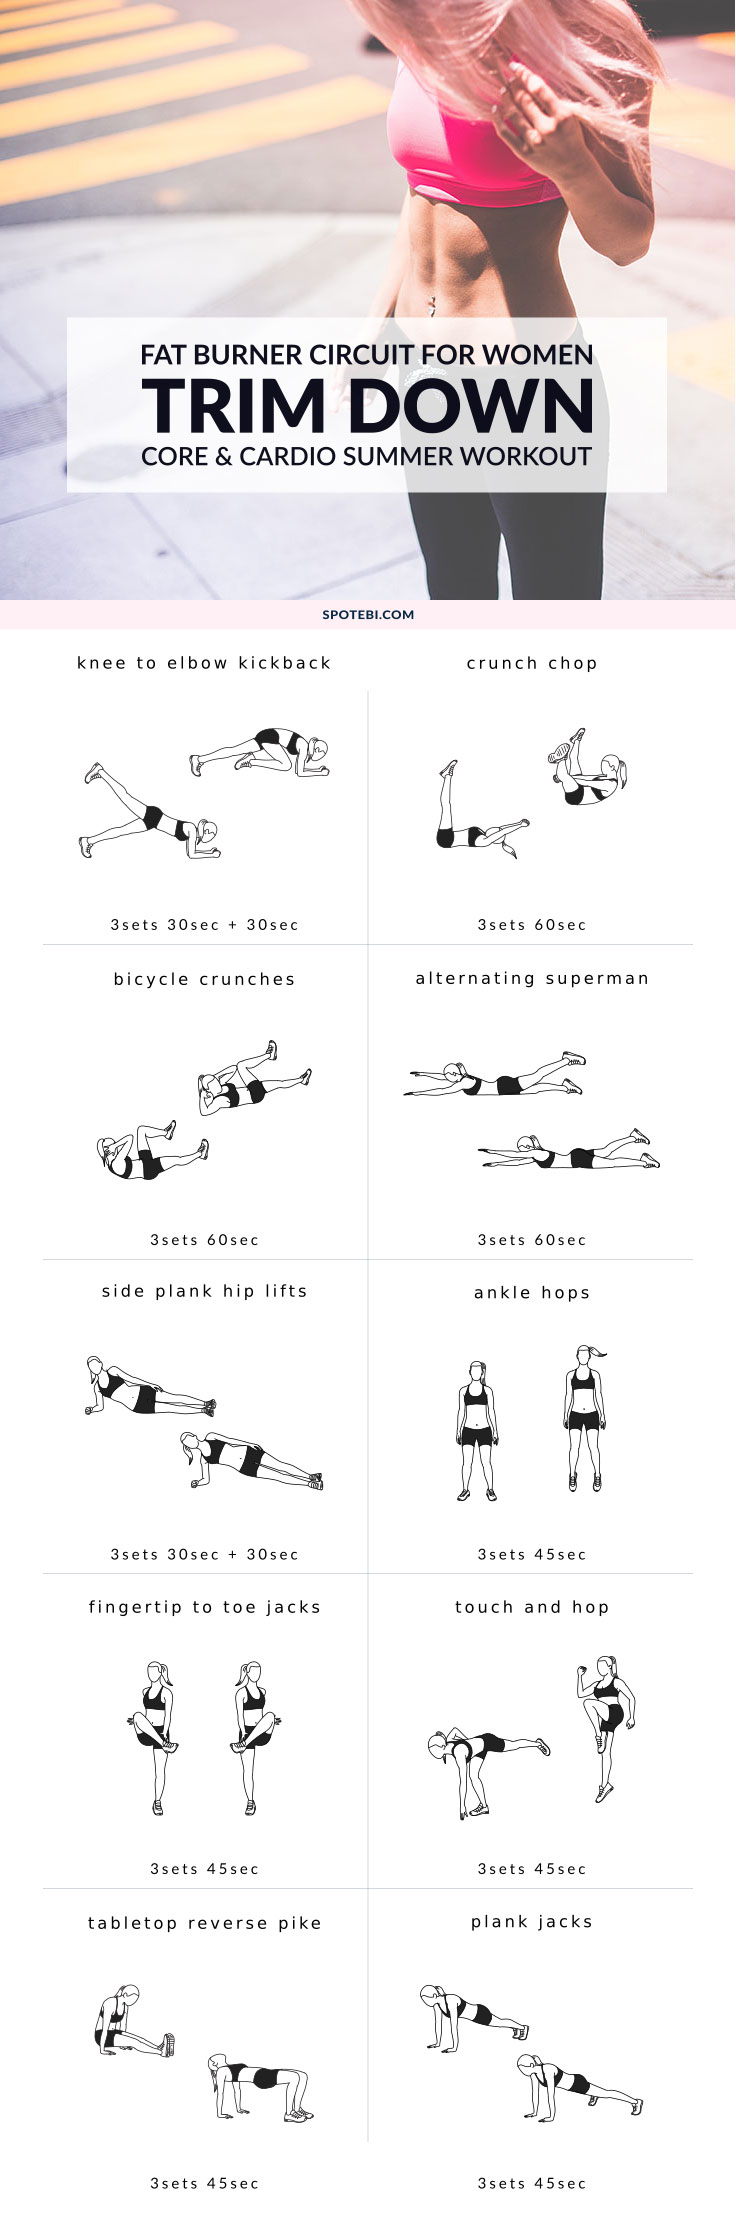 Look and feel your best all summer long with this 27-minute core split workout. A mix of cardio and strength training moves to help you tighten your core, trim down body fat and feel confident in your bikini! https://www.spotebi.com/workout-routines/core-split-workout/